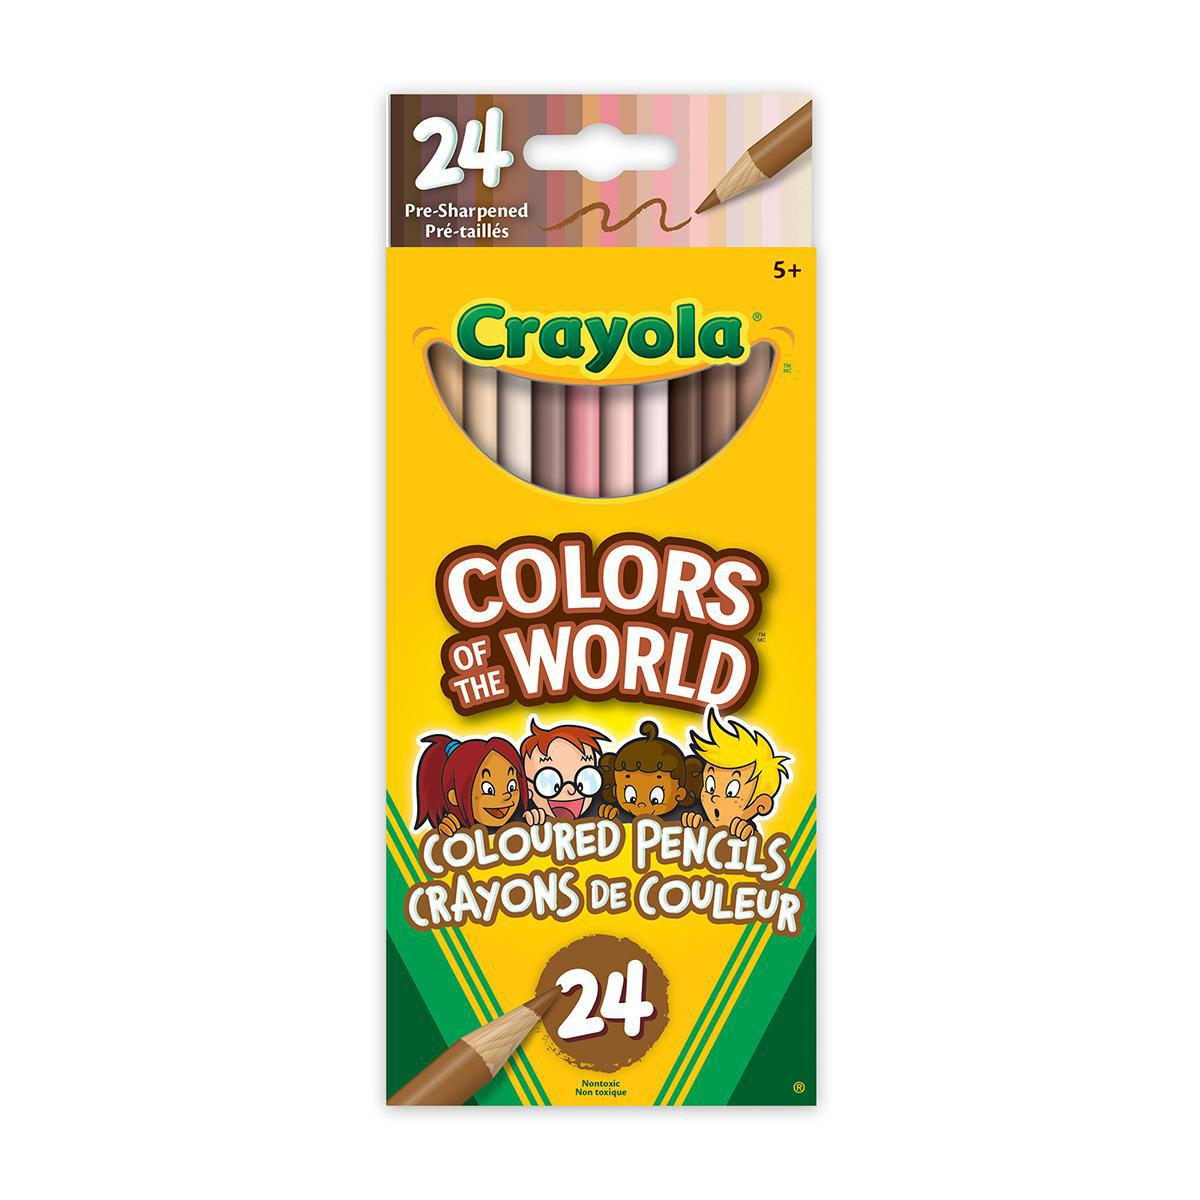 Crayola Colors of the World Colored Pencils 24-pack